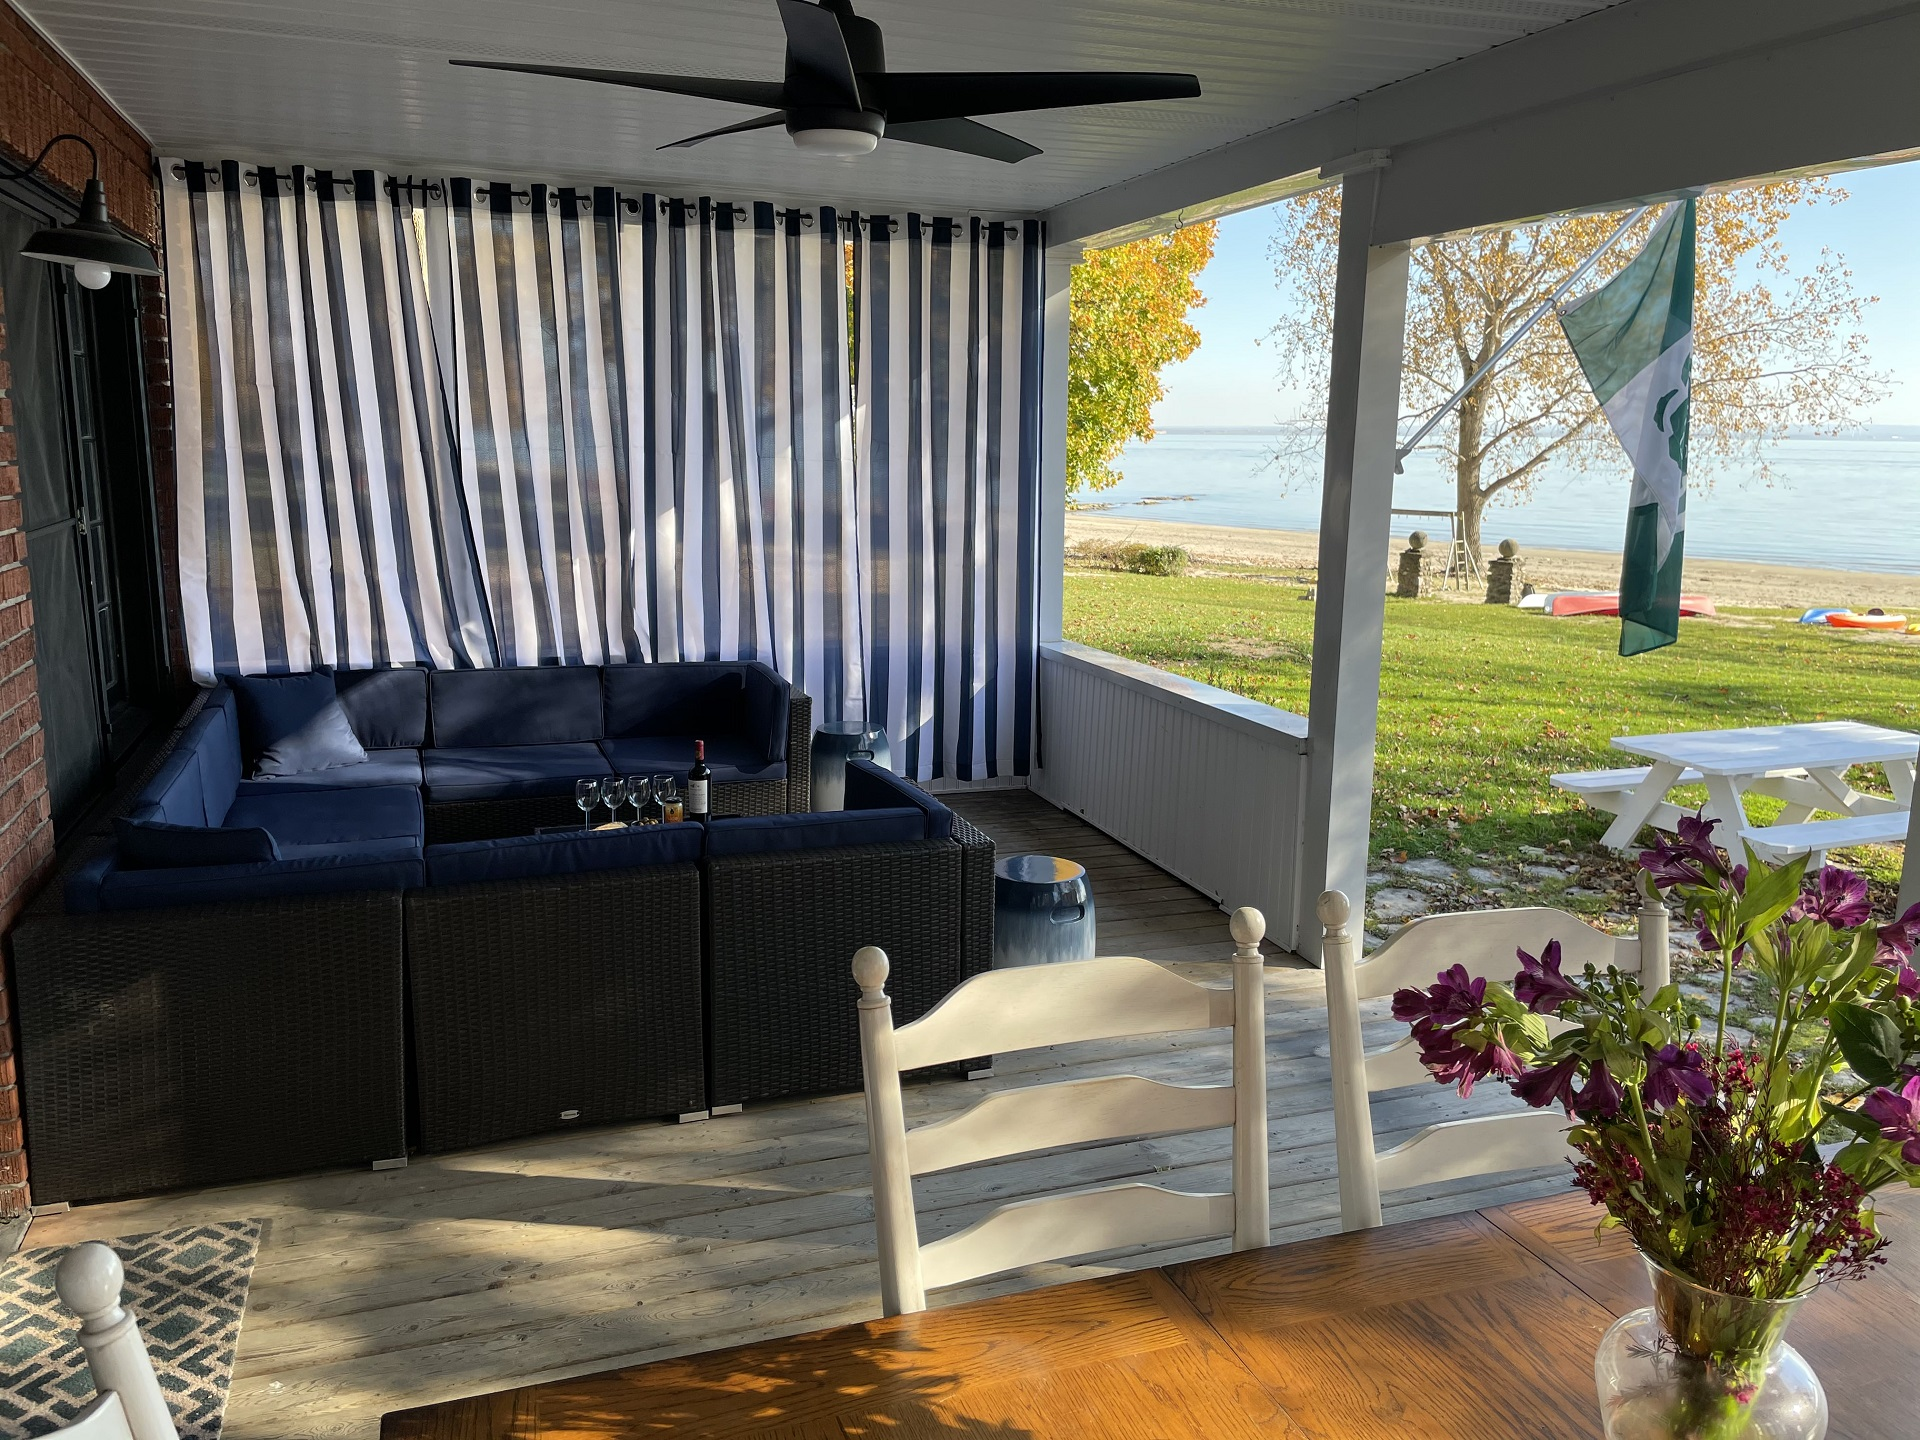 WaverlyPlace-backporch2-Cottage Rentals-Fort Erie-Holiday Homes Vacation Rental Property Management